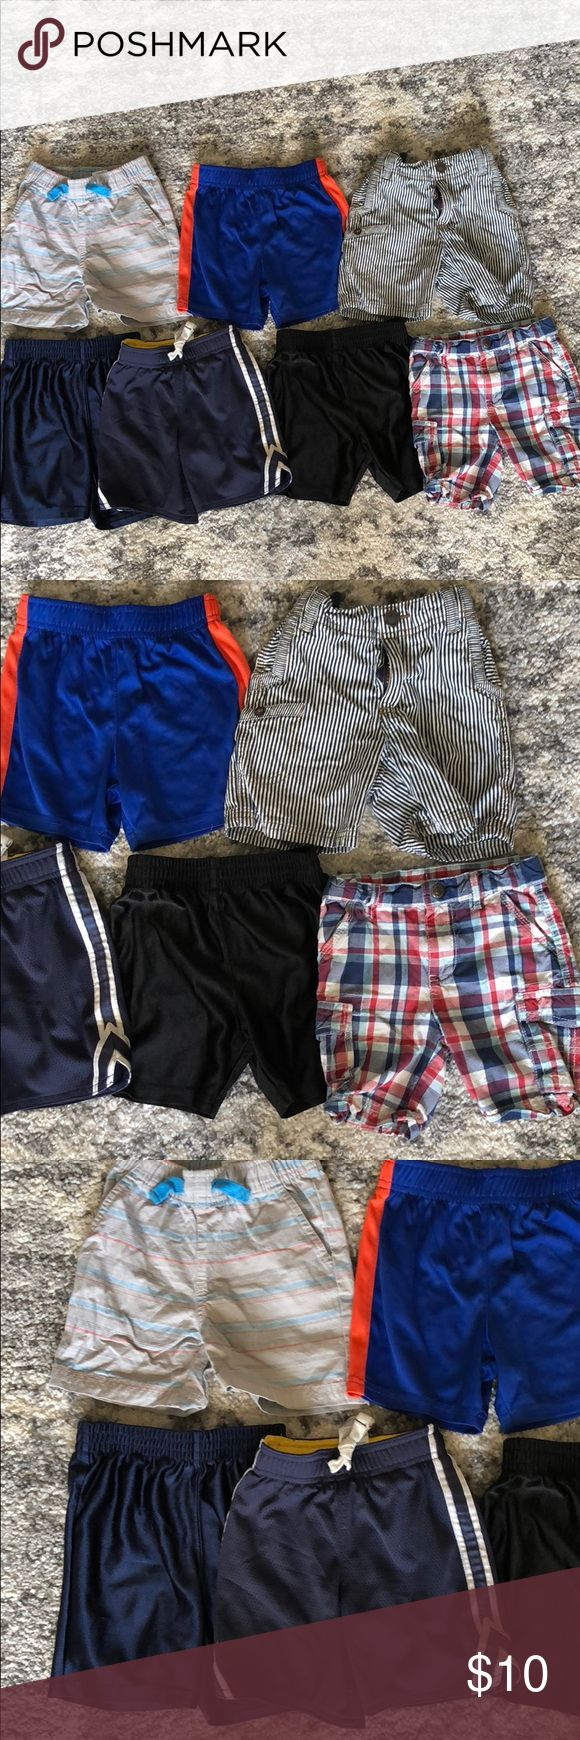 7 pairs of boys shorts. Size 2t. 7 pairs of boys shorts. Size 2t. 4 pairs of them are athletic type shorts. ❌⚠️NO TRADES & PLEASE NO LOWBALL OFFERS! You will be ignored! If you want to save money than I do offer 10% off of all bundles. Also no offers on bundles since I will already be giving you 10% off my prices.⚠️❌ Children's Place Bottoms Shorts